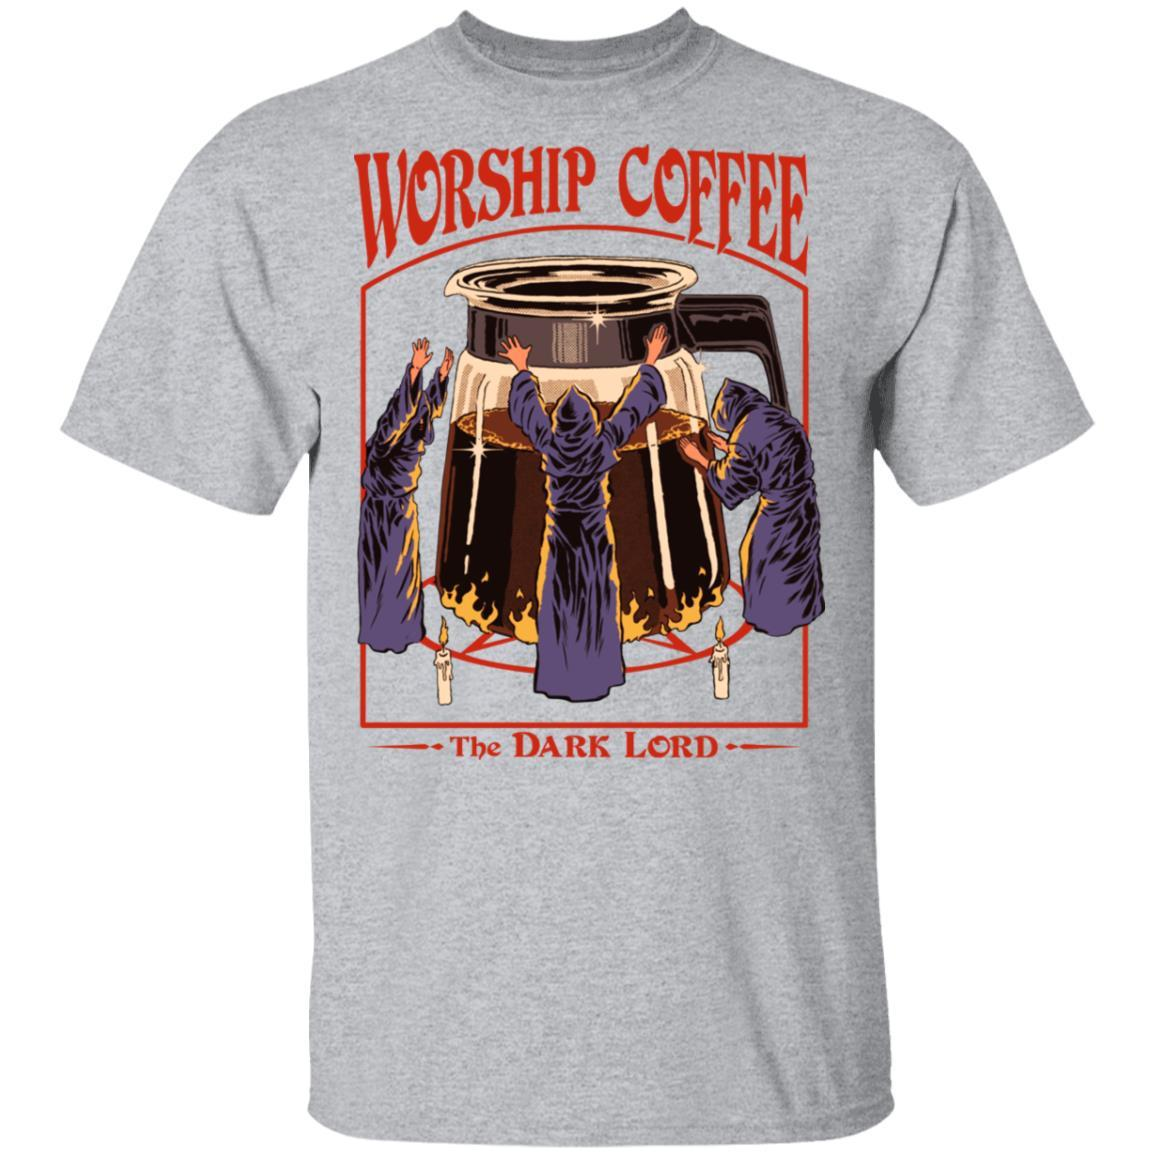 Worship Coffee The Dark Lord T-Shirts, Hoodies 1049-9972-89706084-48200 - Tee Ript